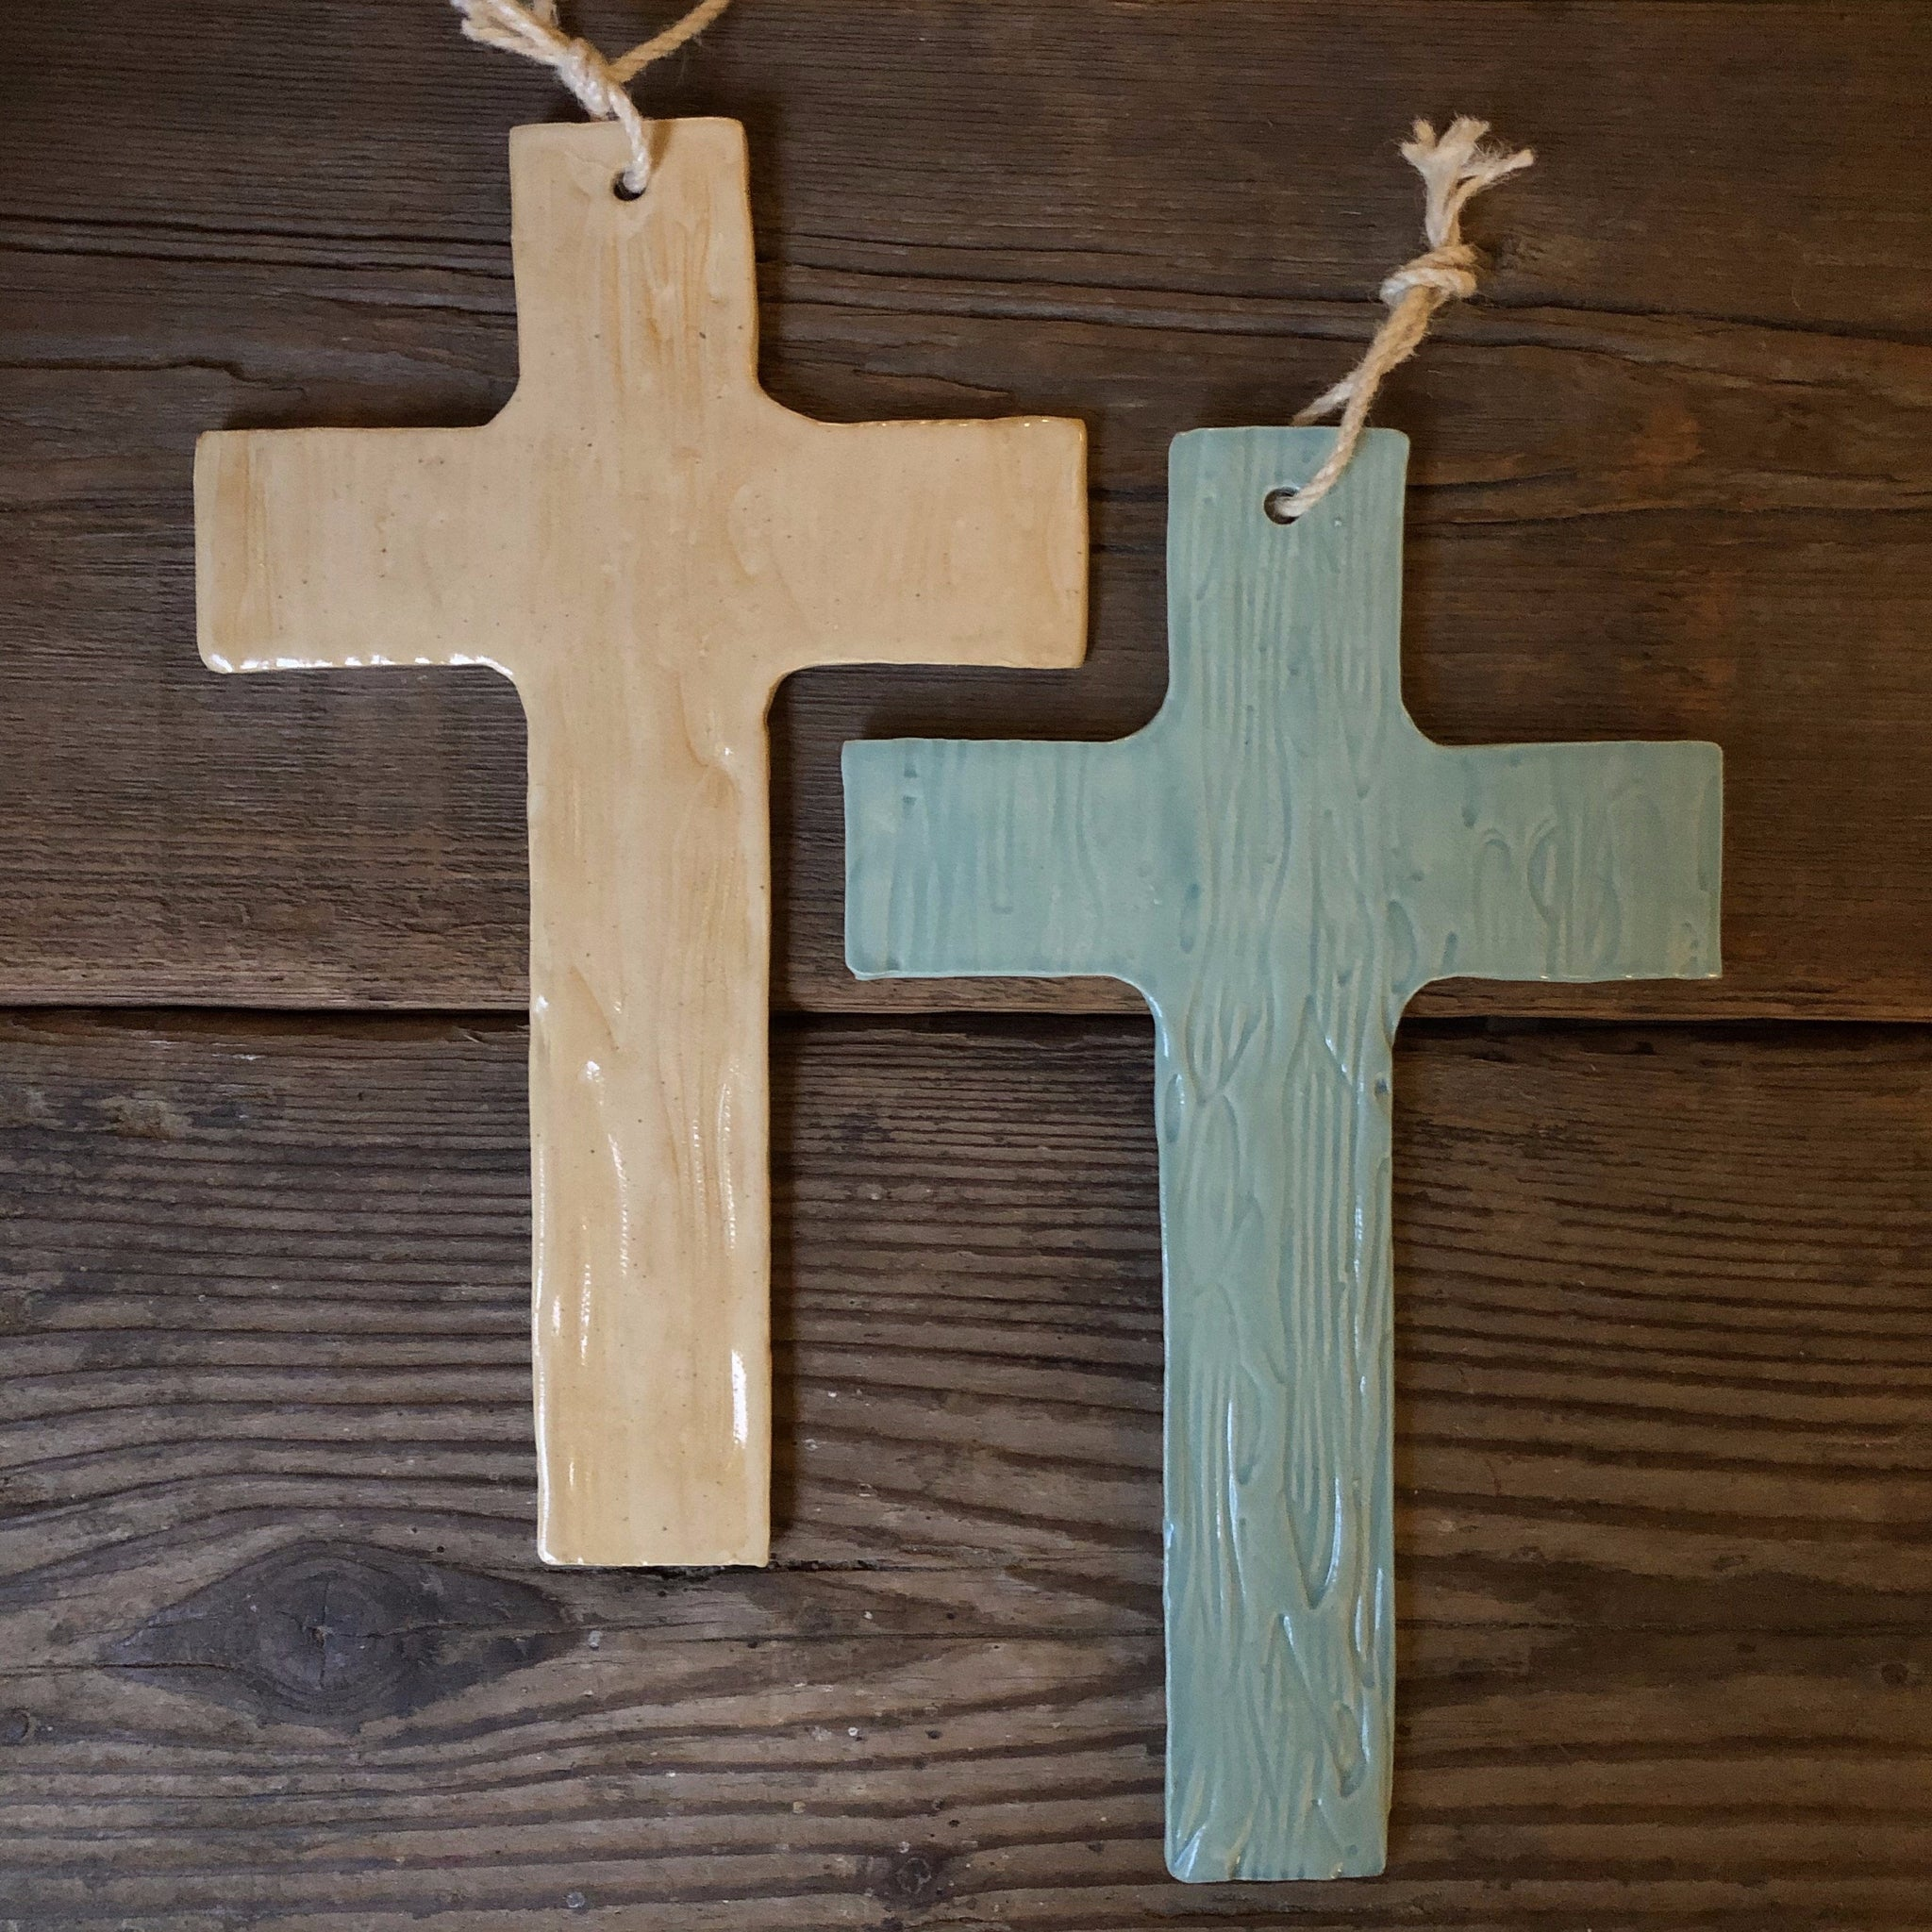 Wood-grain textured cross